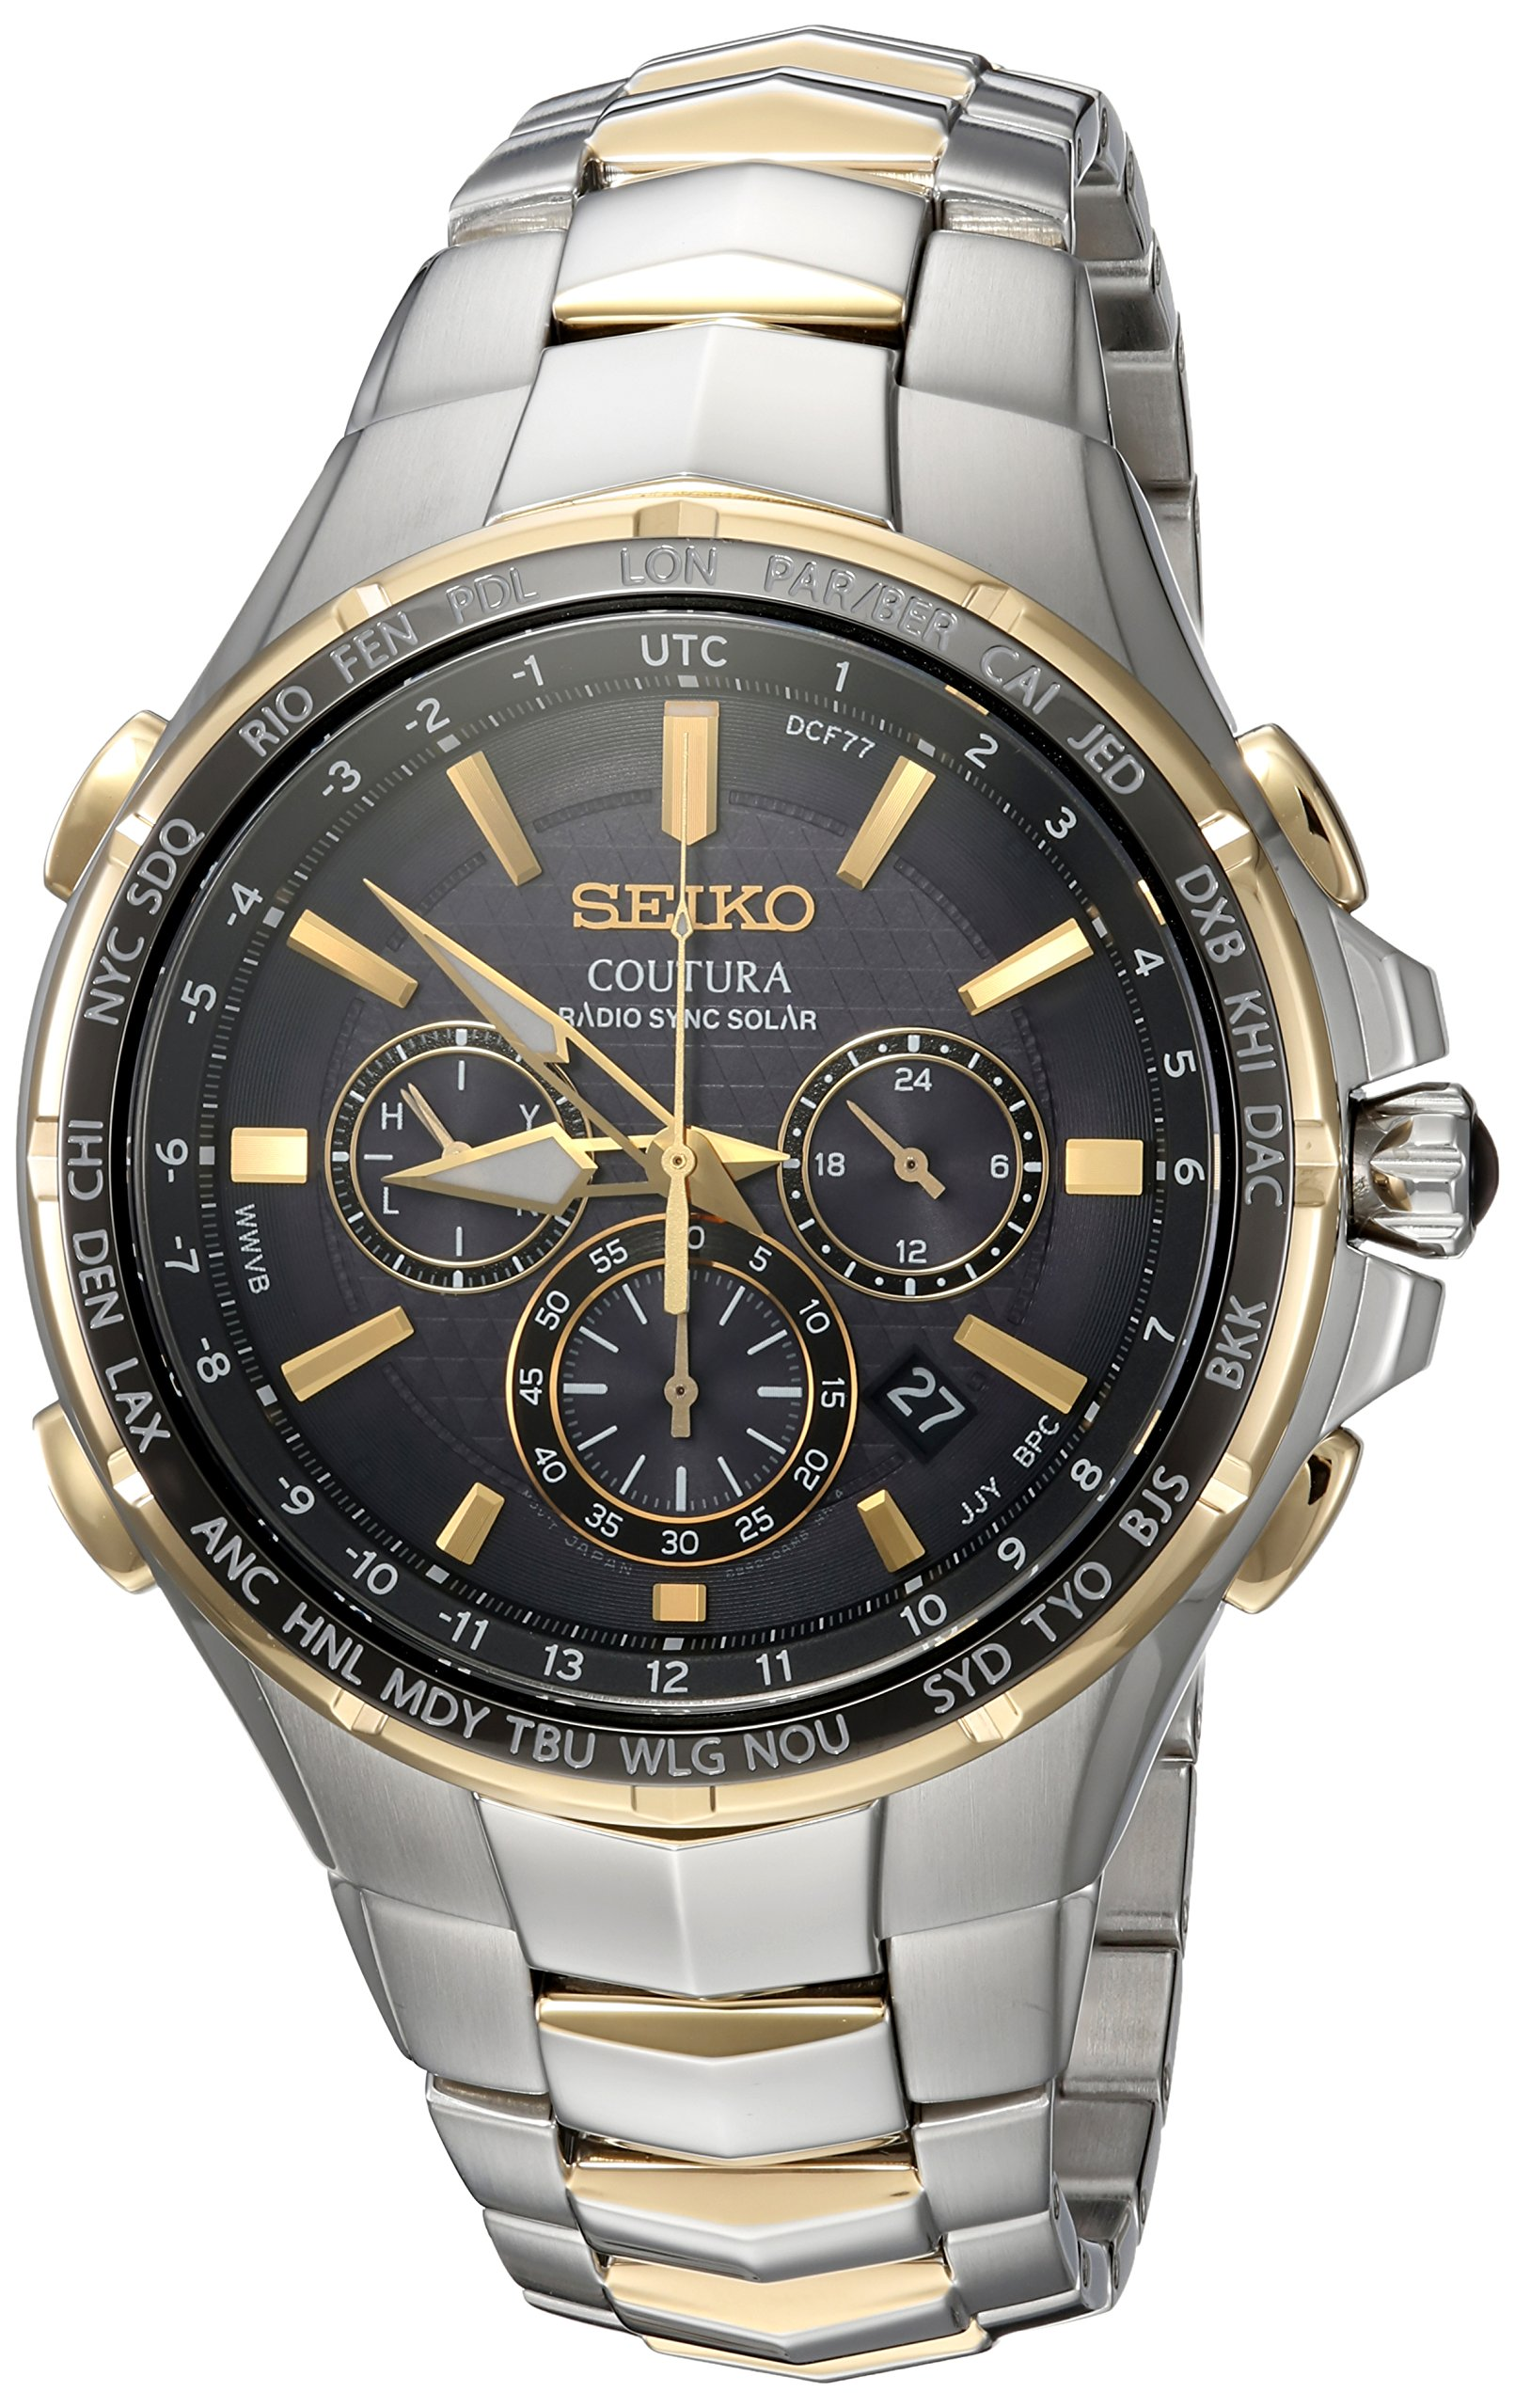 Seiko Men's SSG010 COUTURA Analog Display Japanese Quartz Two Tone Watch by SEIKO